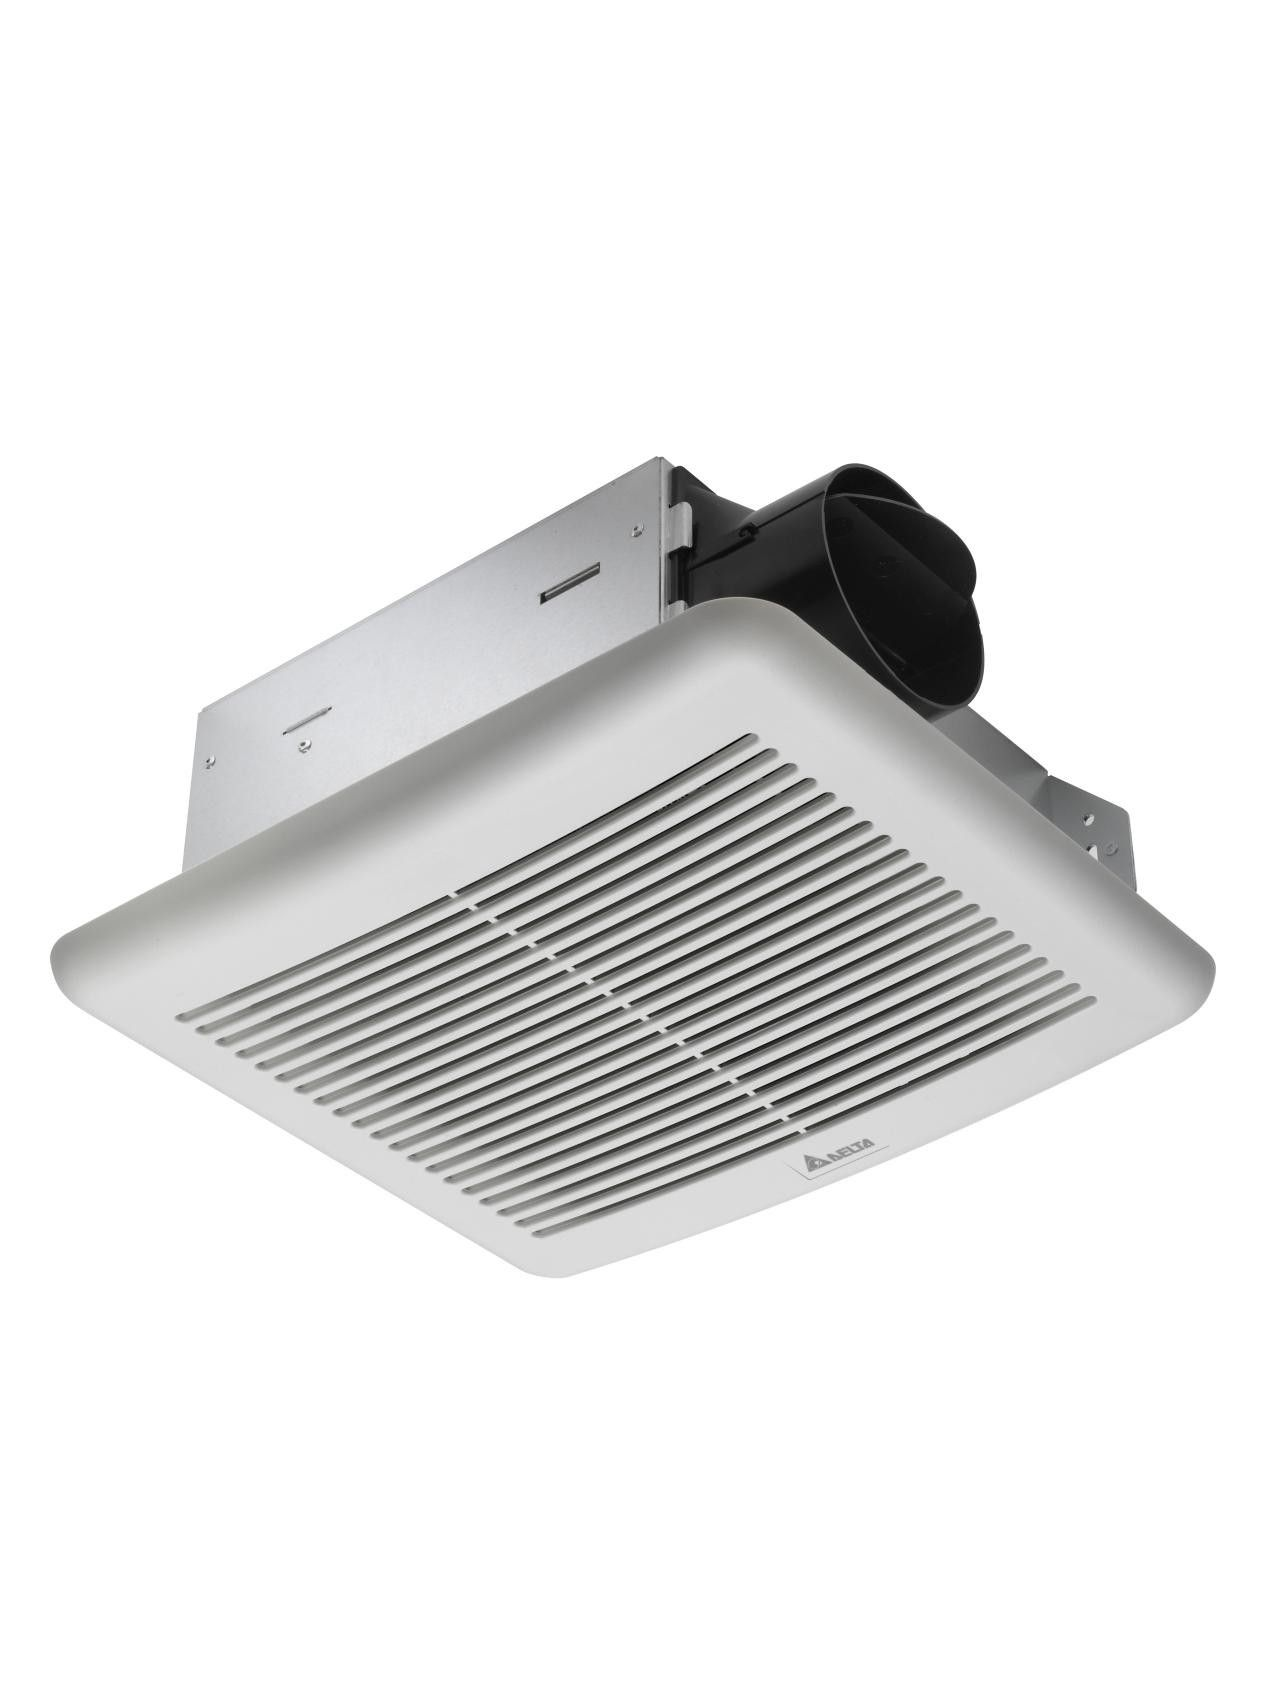 Lovely Ventilation Fans For Bathroom Best Ventilation Fans For Bathroom Broan Ventilation Fans For Bath Ventilation Fans For Bath Bathroom Exhaust Fan